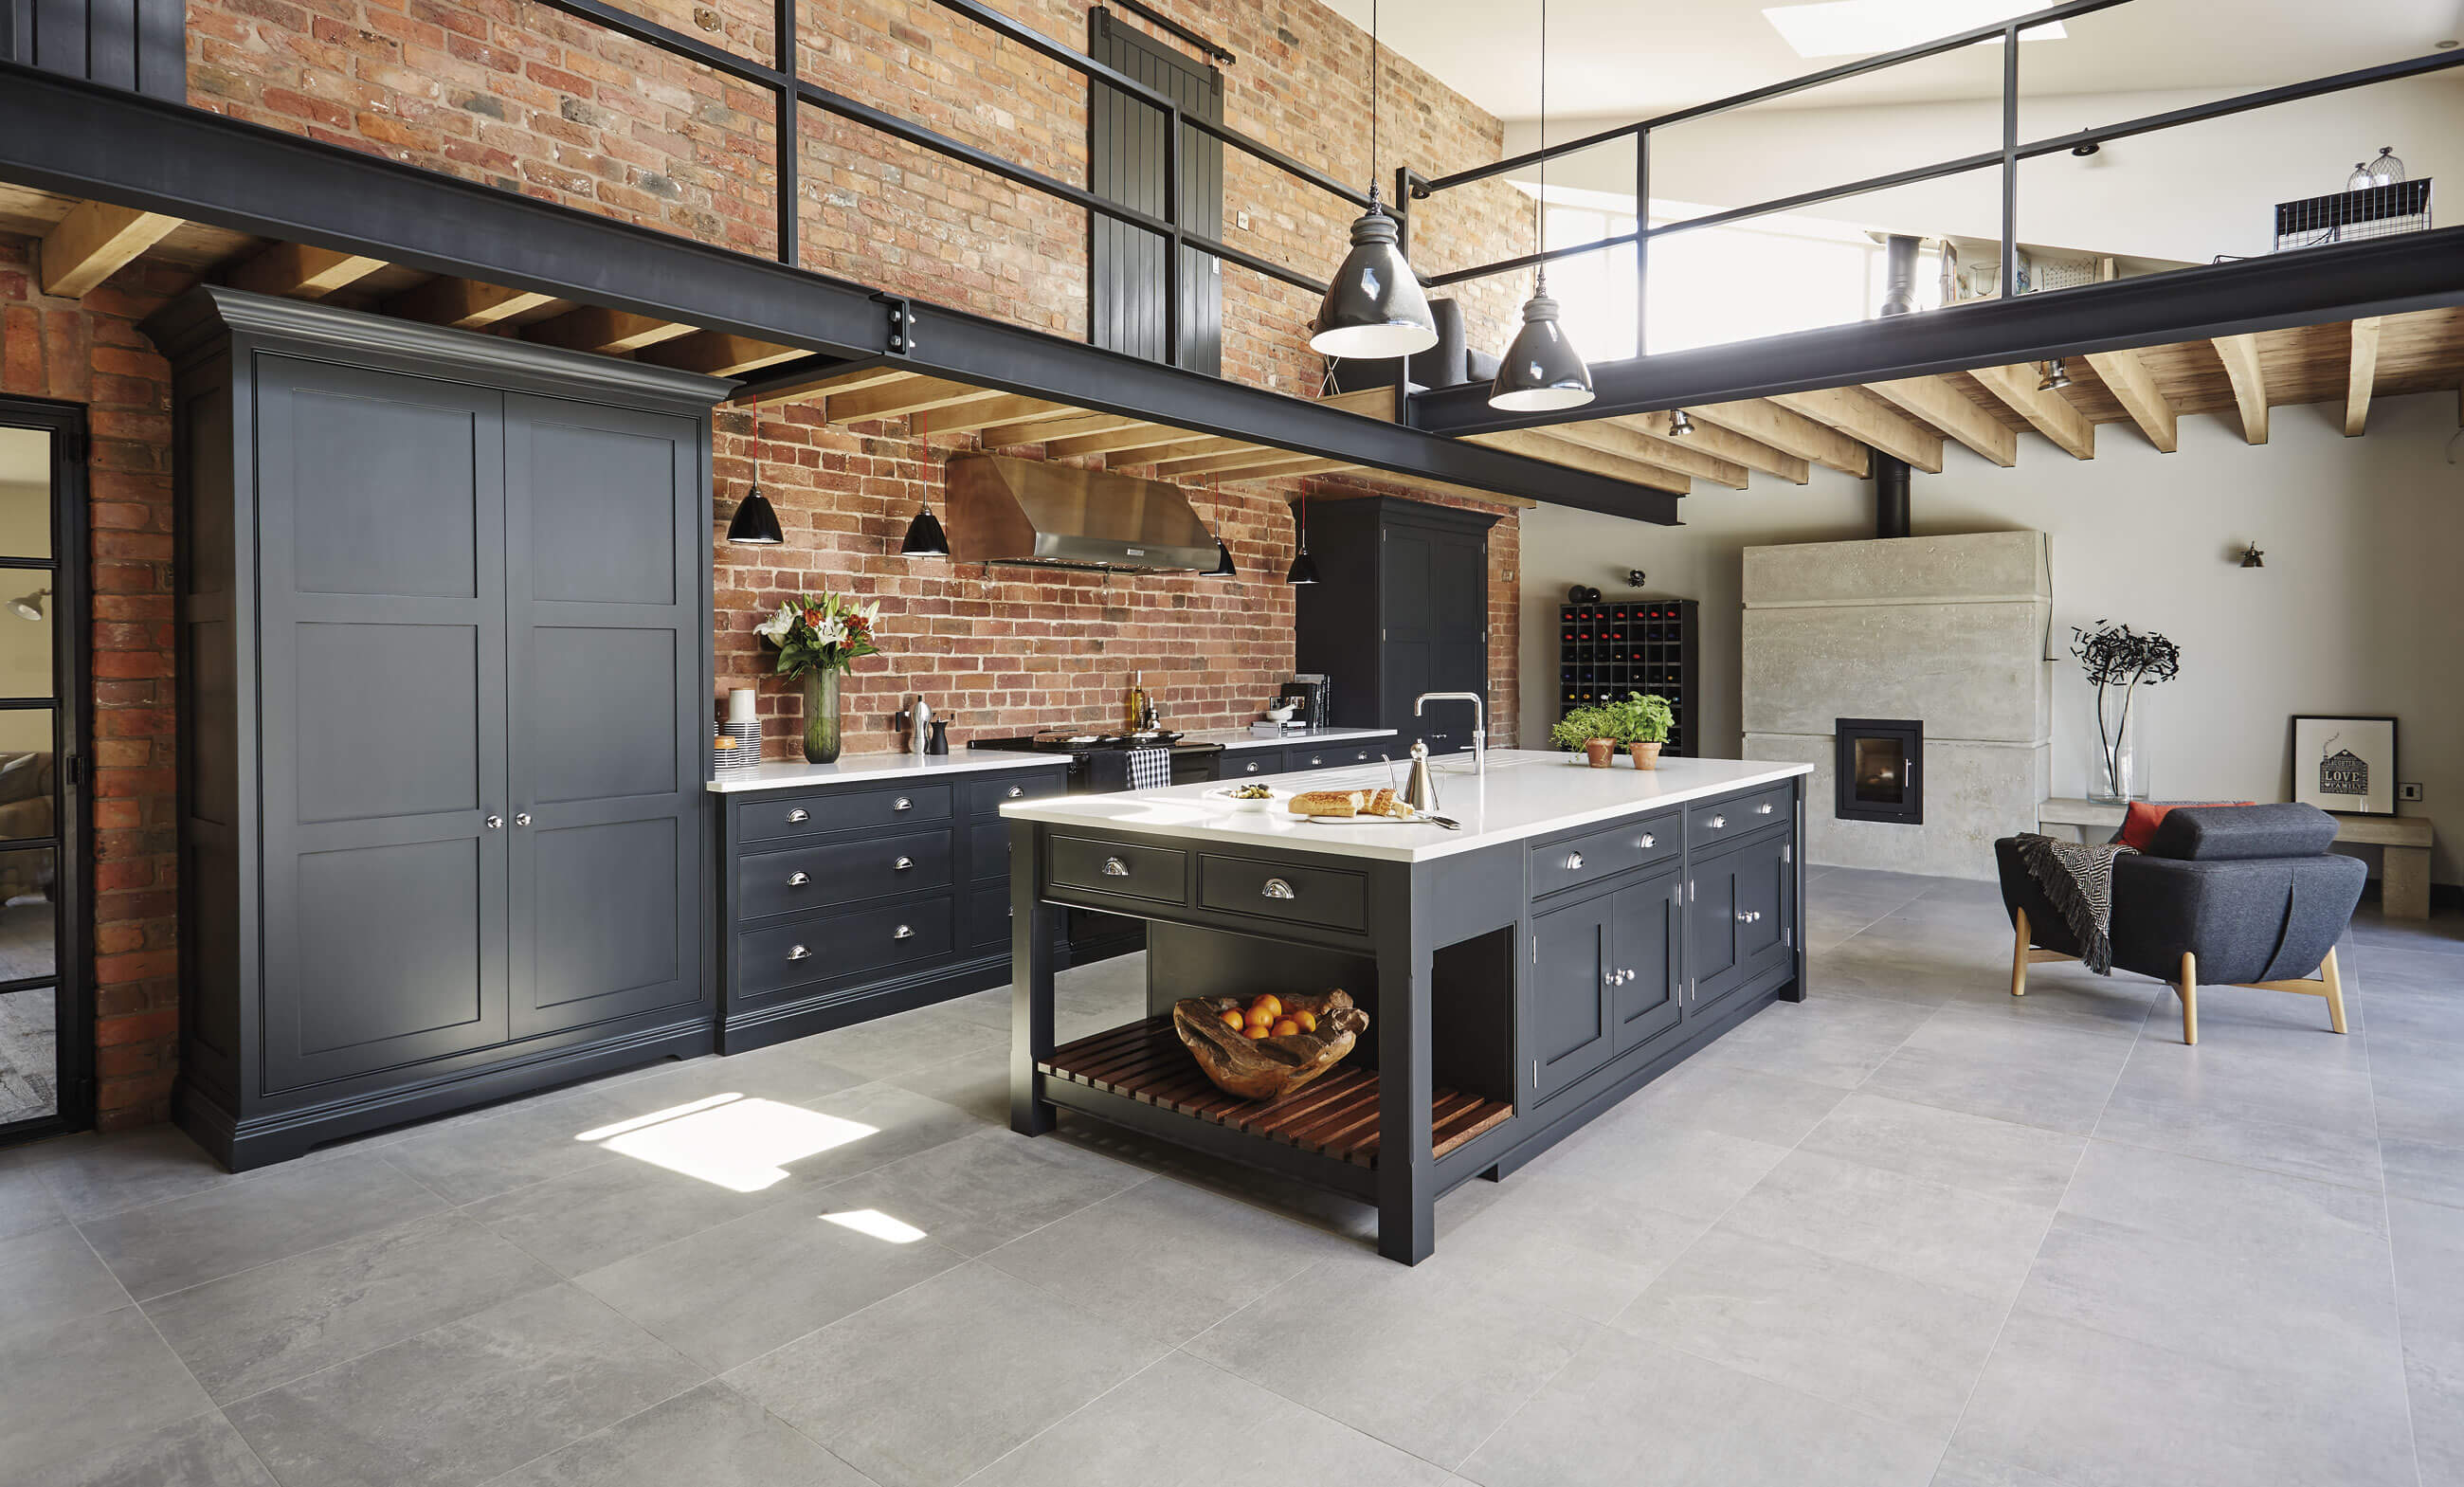 Exceptionnel Scroll For More. Scroll Down. Home U003e Kitchens U003e Industrial Style Shaker  Kitchen